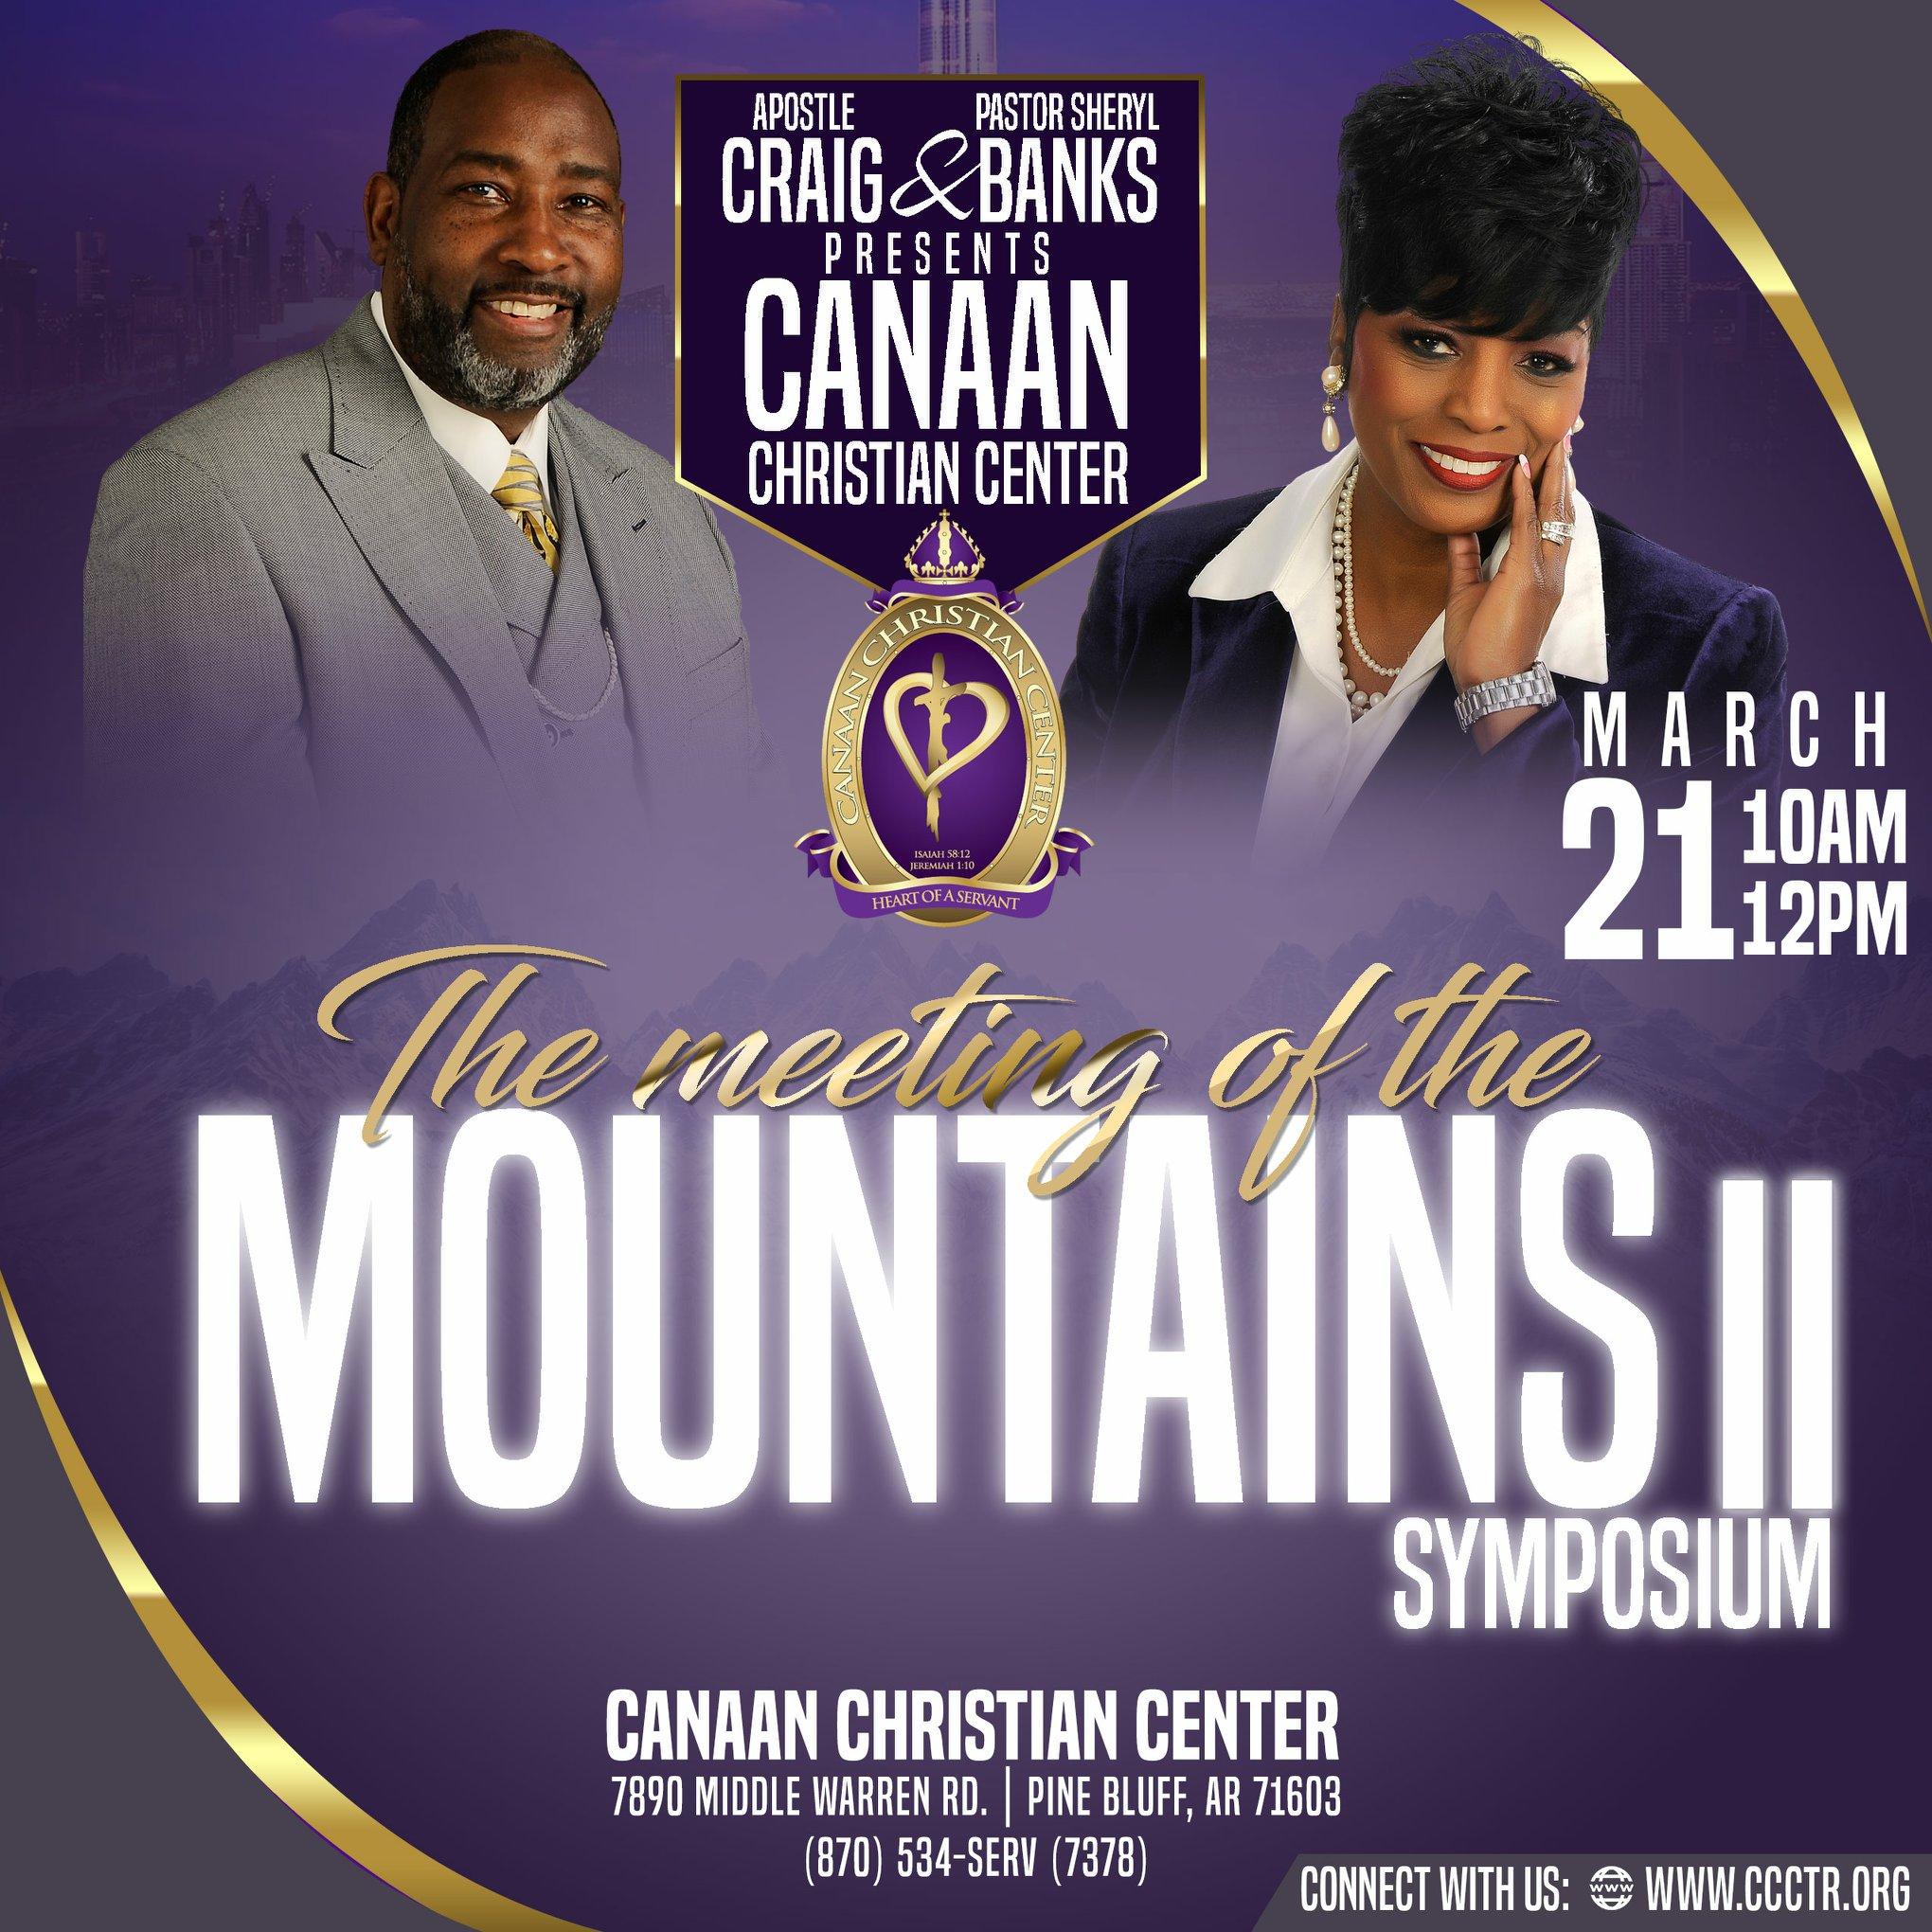 Canaan Christian Meeting of the Mountains